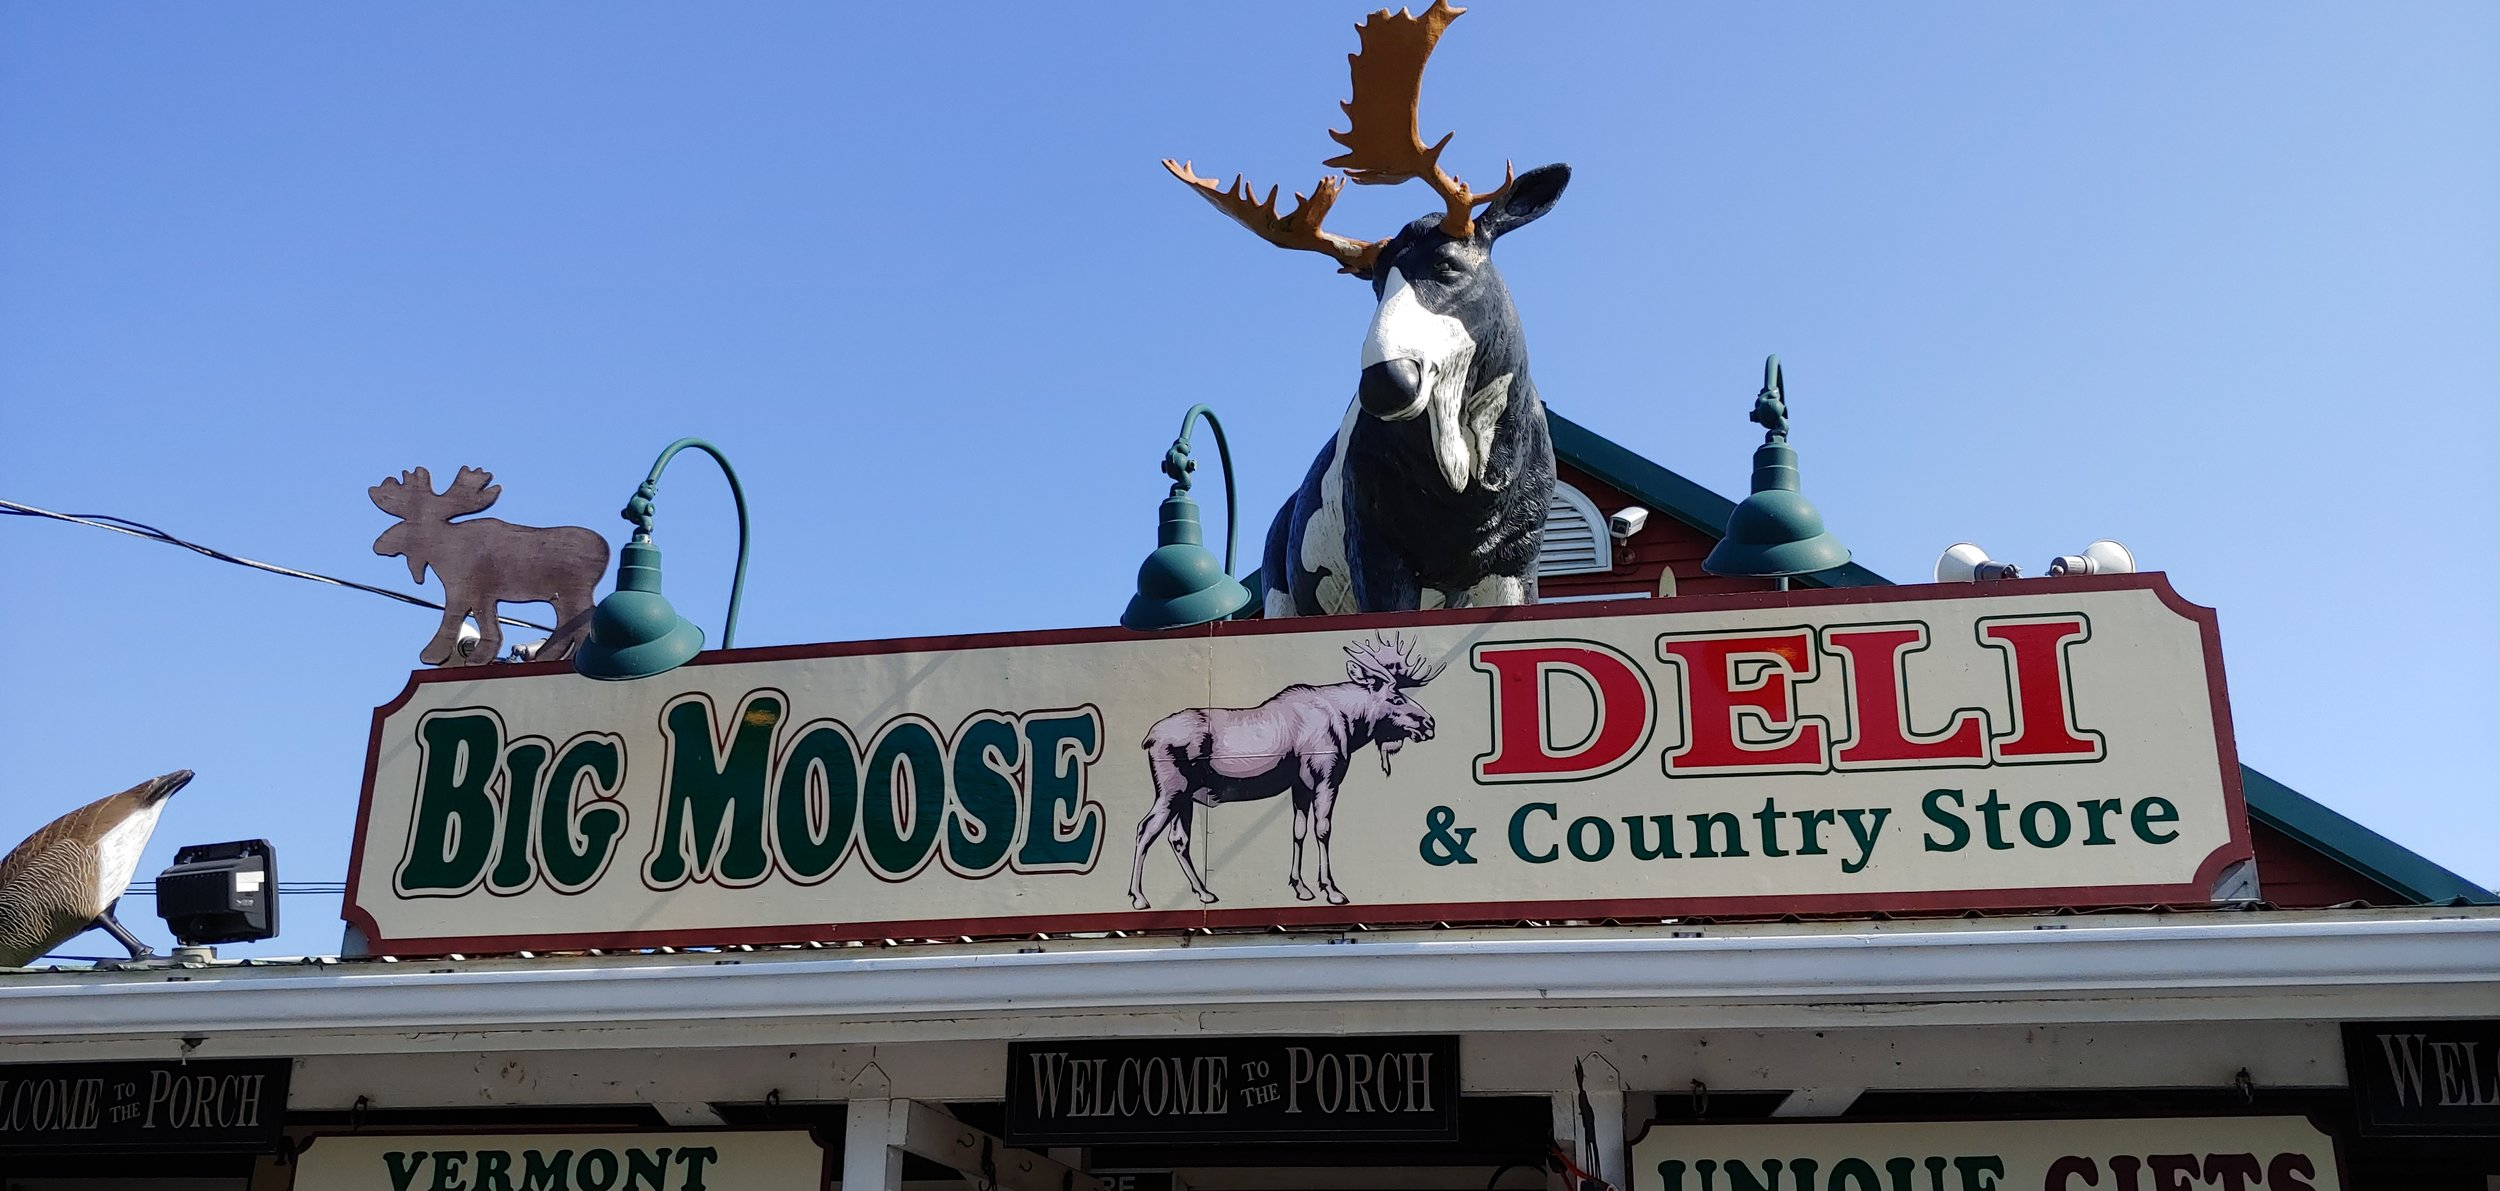 Big Moose Deli and Country Store